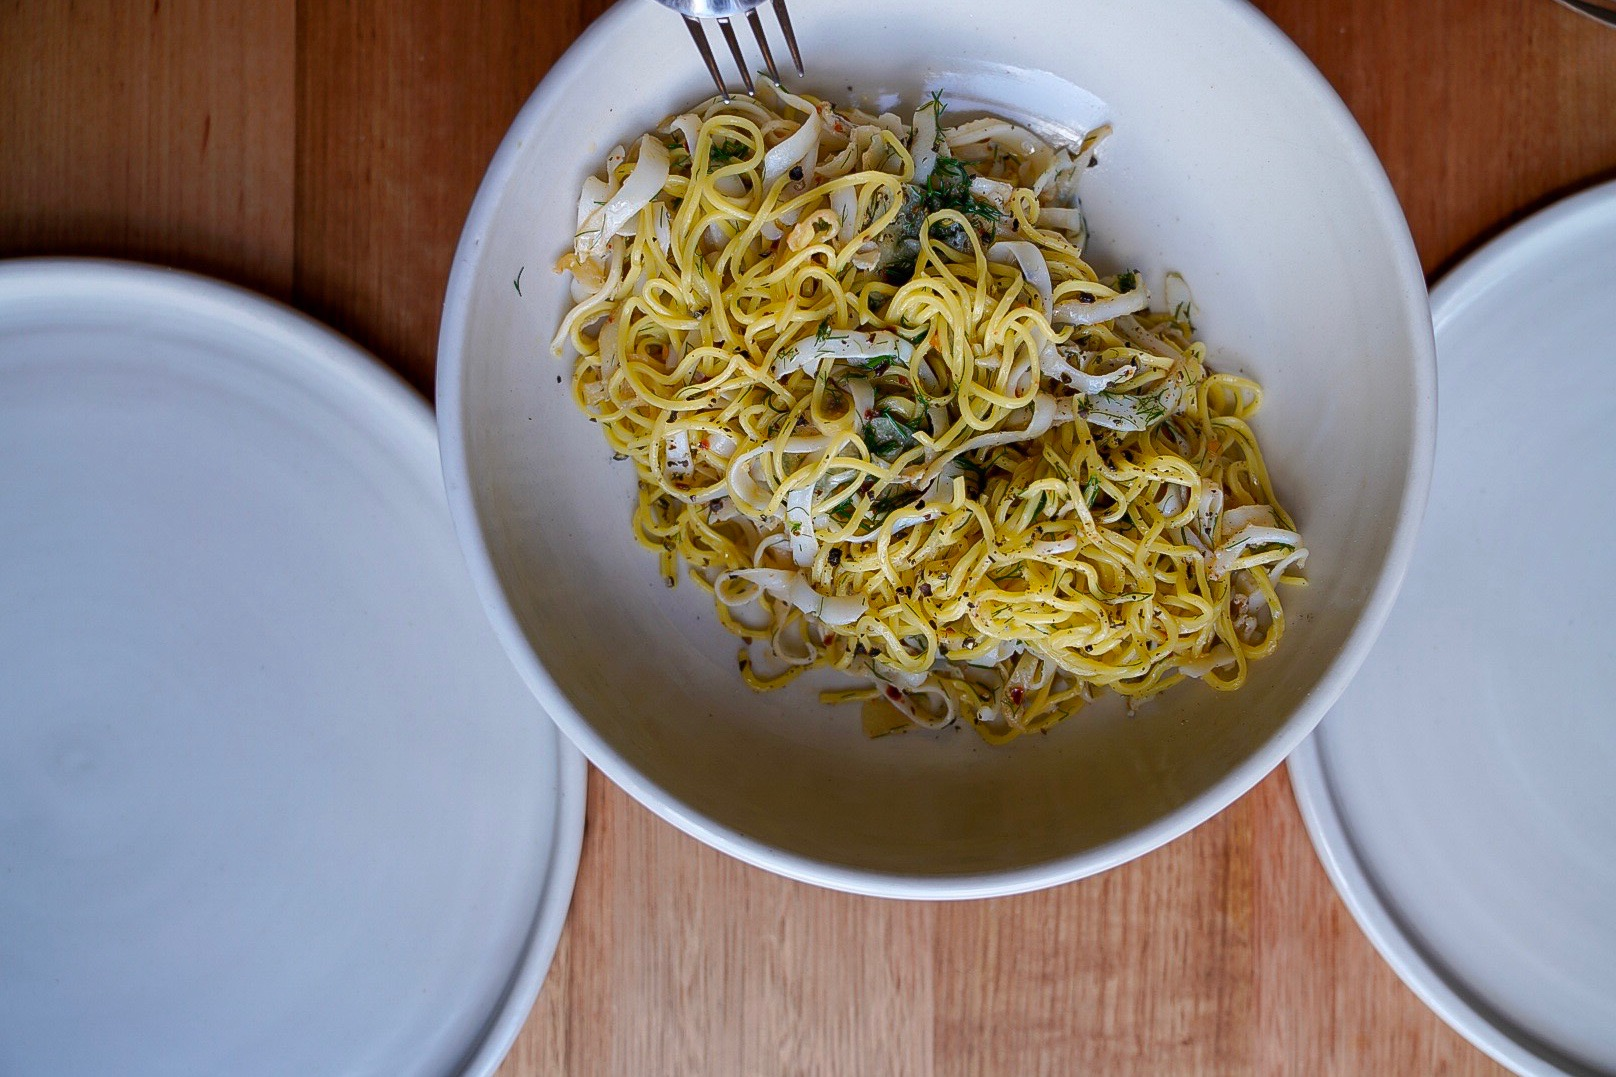 'Capelli d'angelo with calamari, garlic + wild fennel', The Agrarian Eatery, New Norfolk